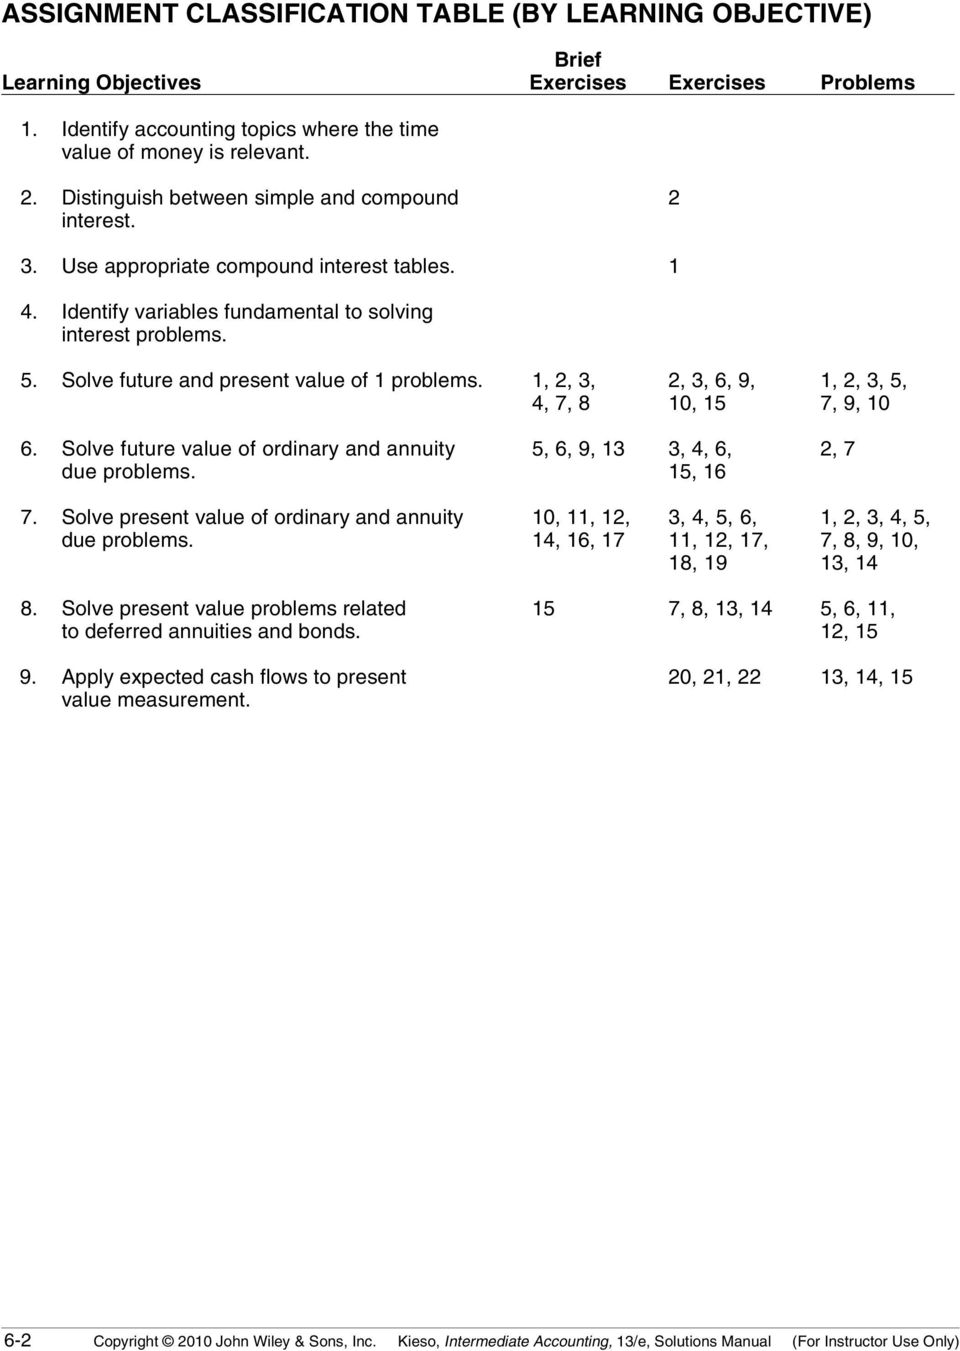 Solve future and present value of 1 problems. 1, 2, 3, 4